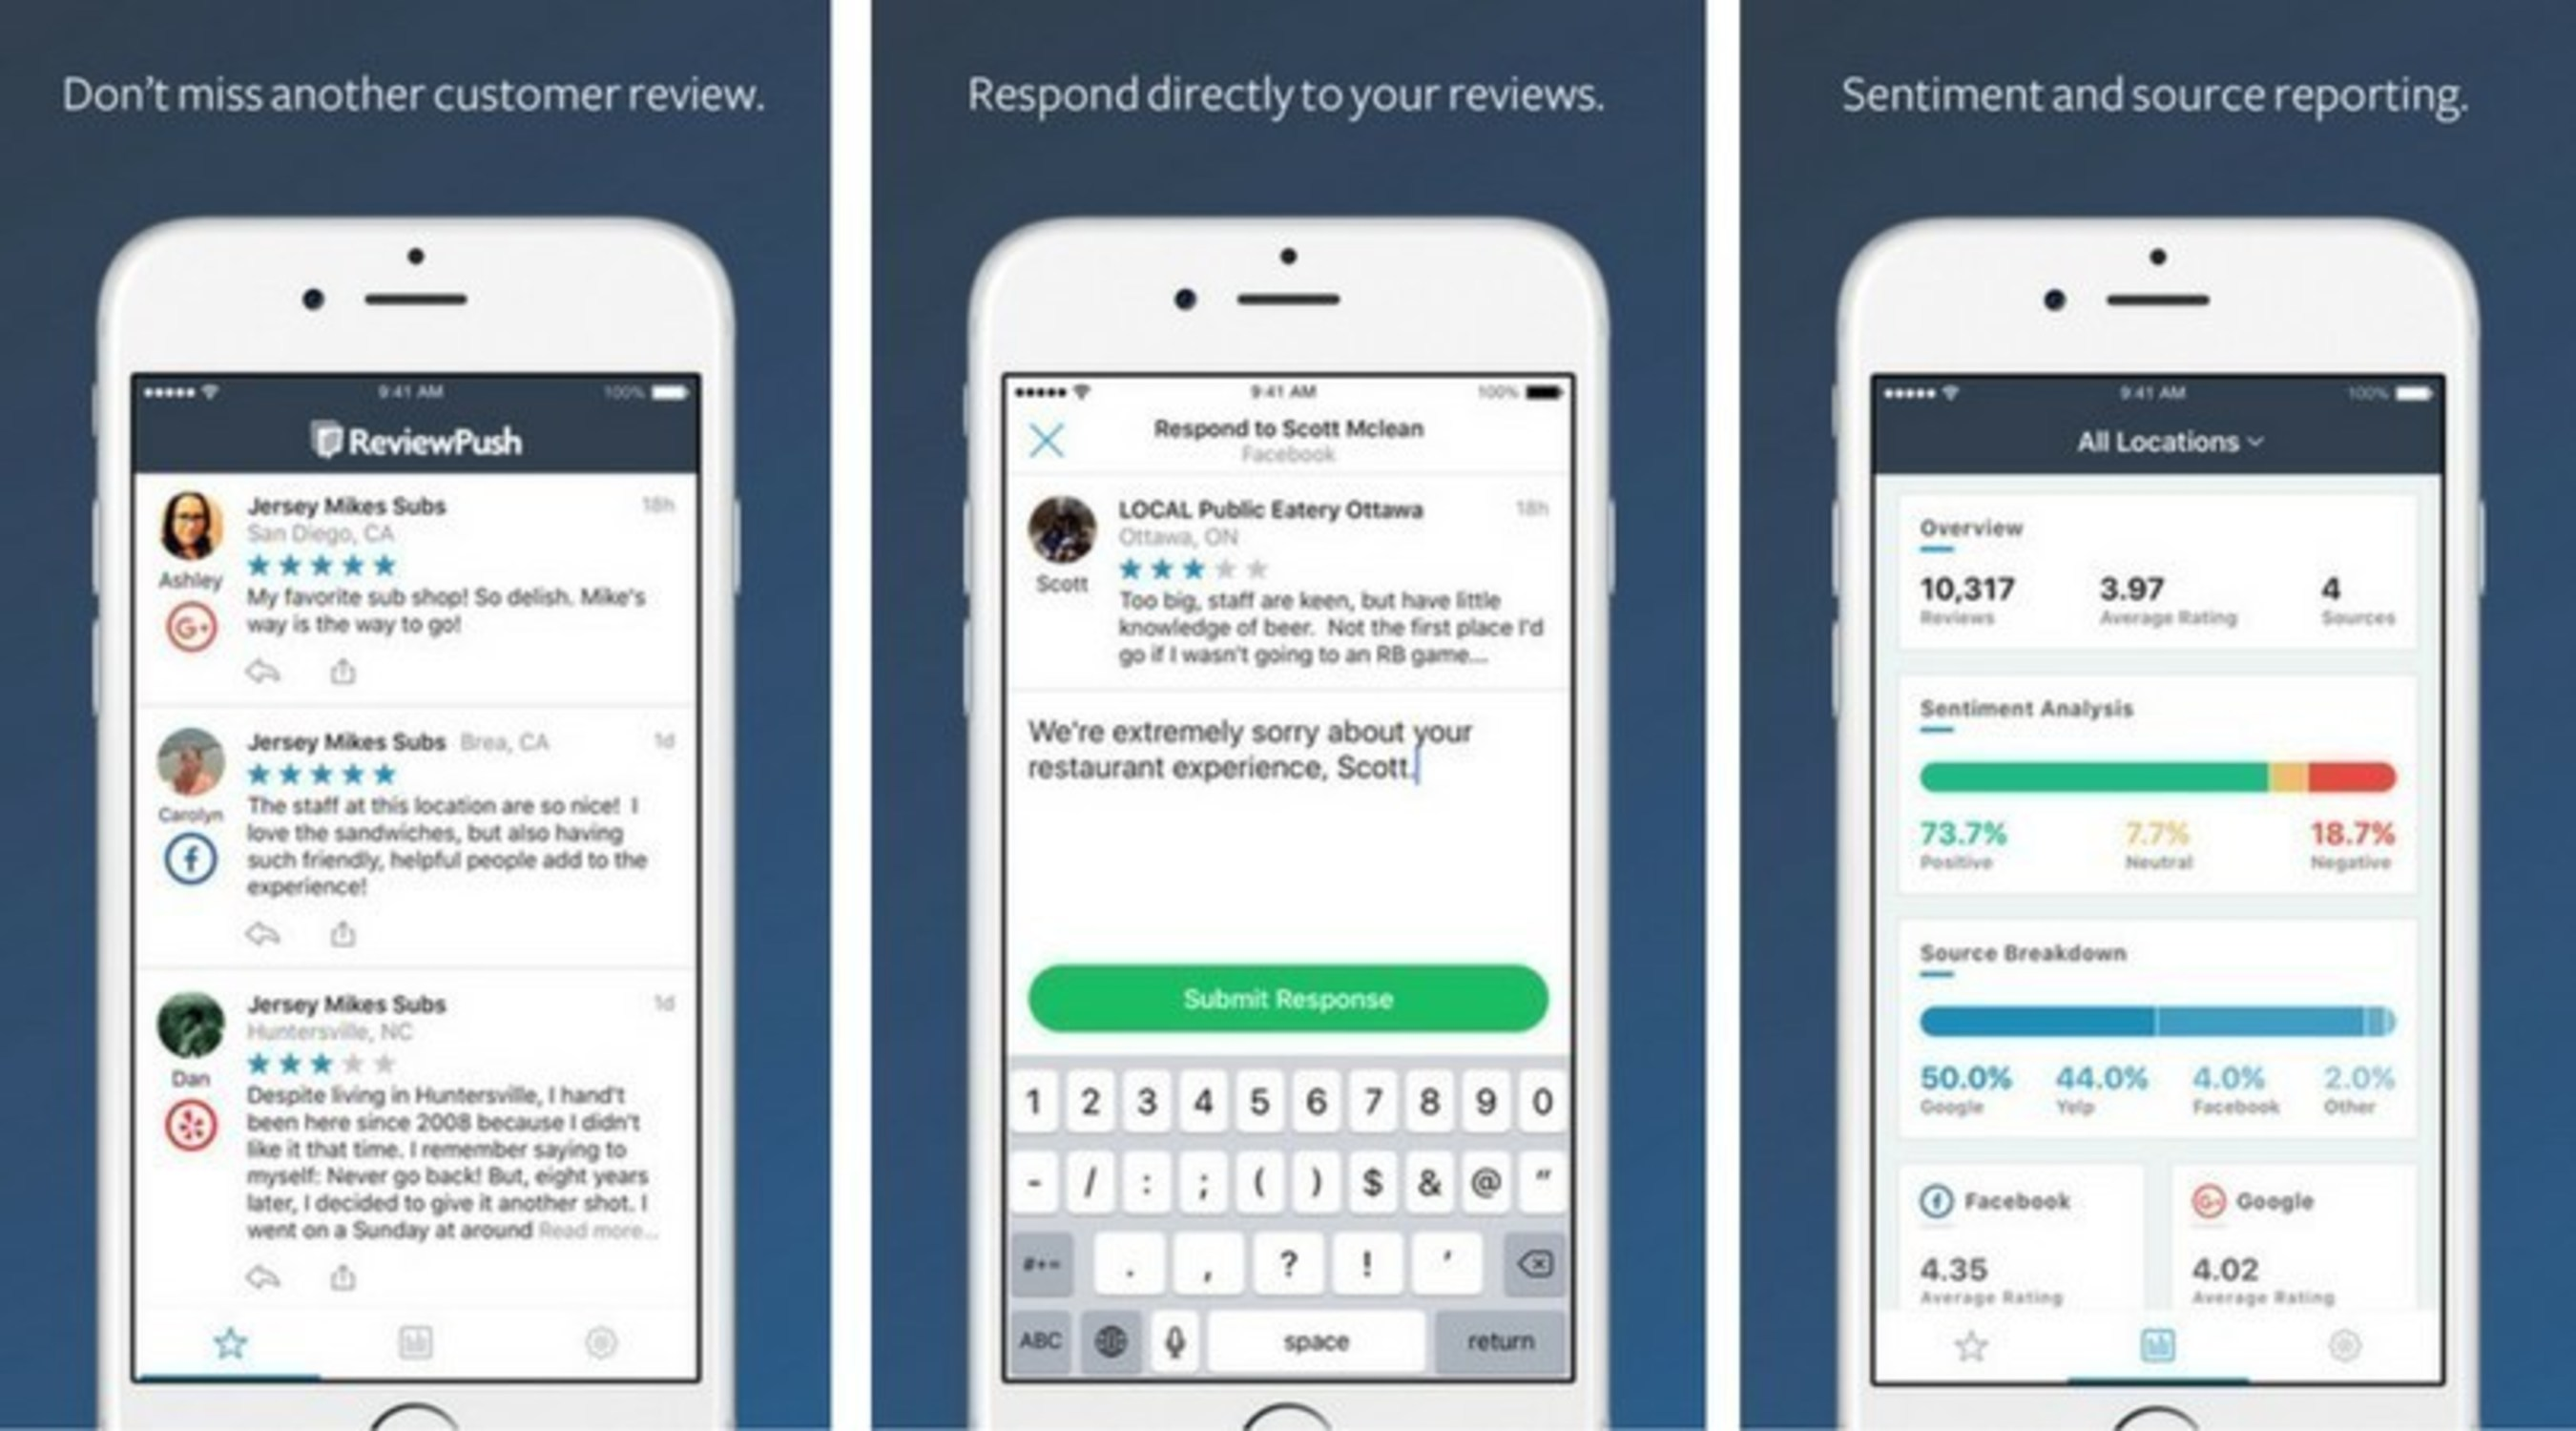 Manage your online reviews on the go with the ReviewPush mobile app!